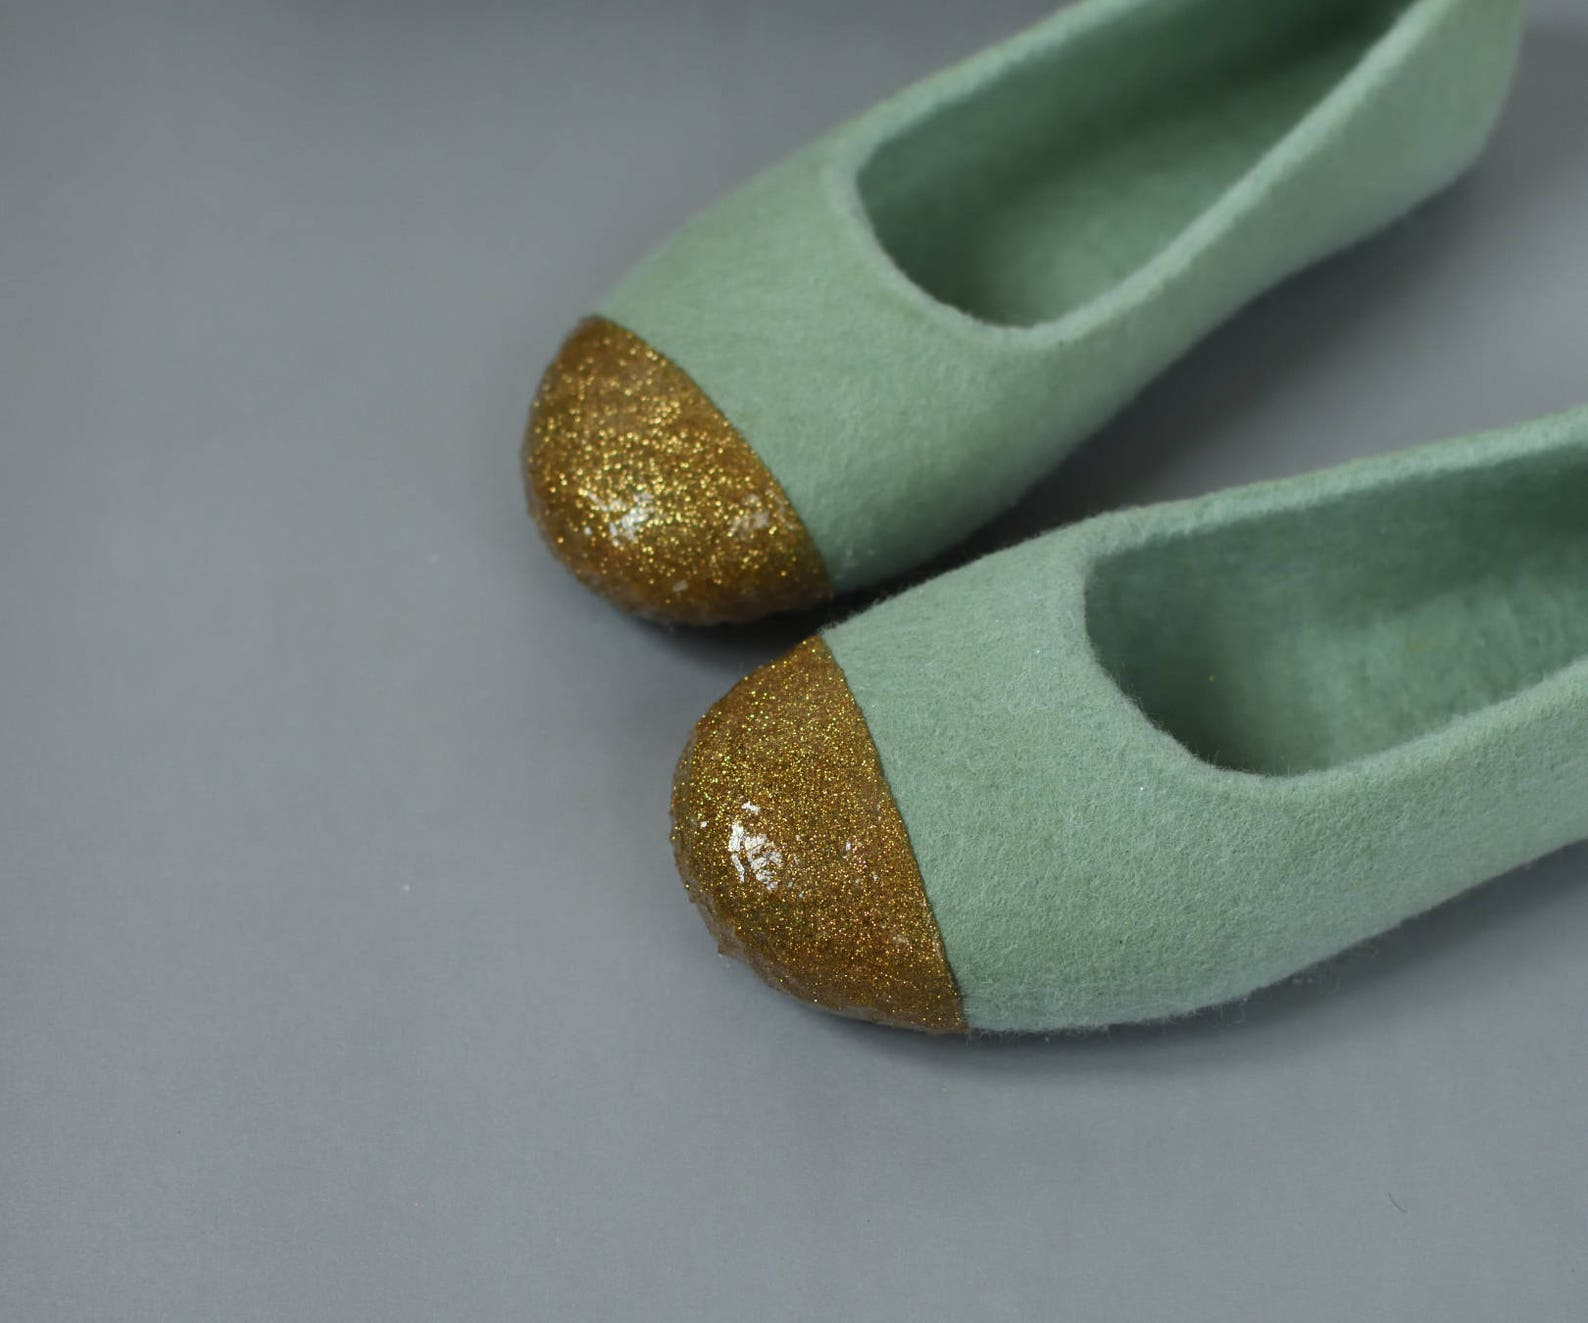 green felt slippers for women felted ballet flats - felted slippers with gold glitter decoration hand dyed sage green organic wo